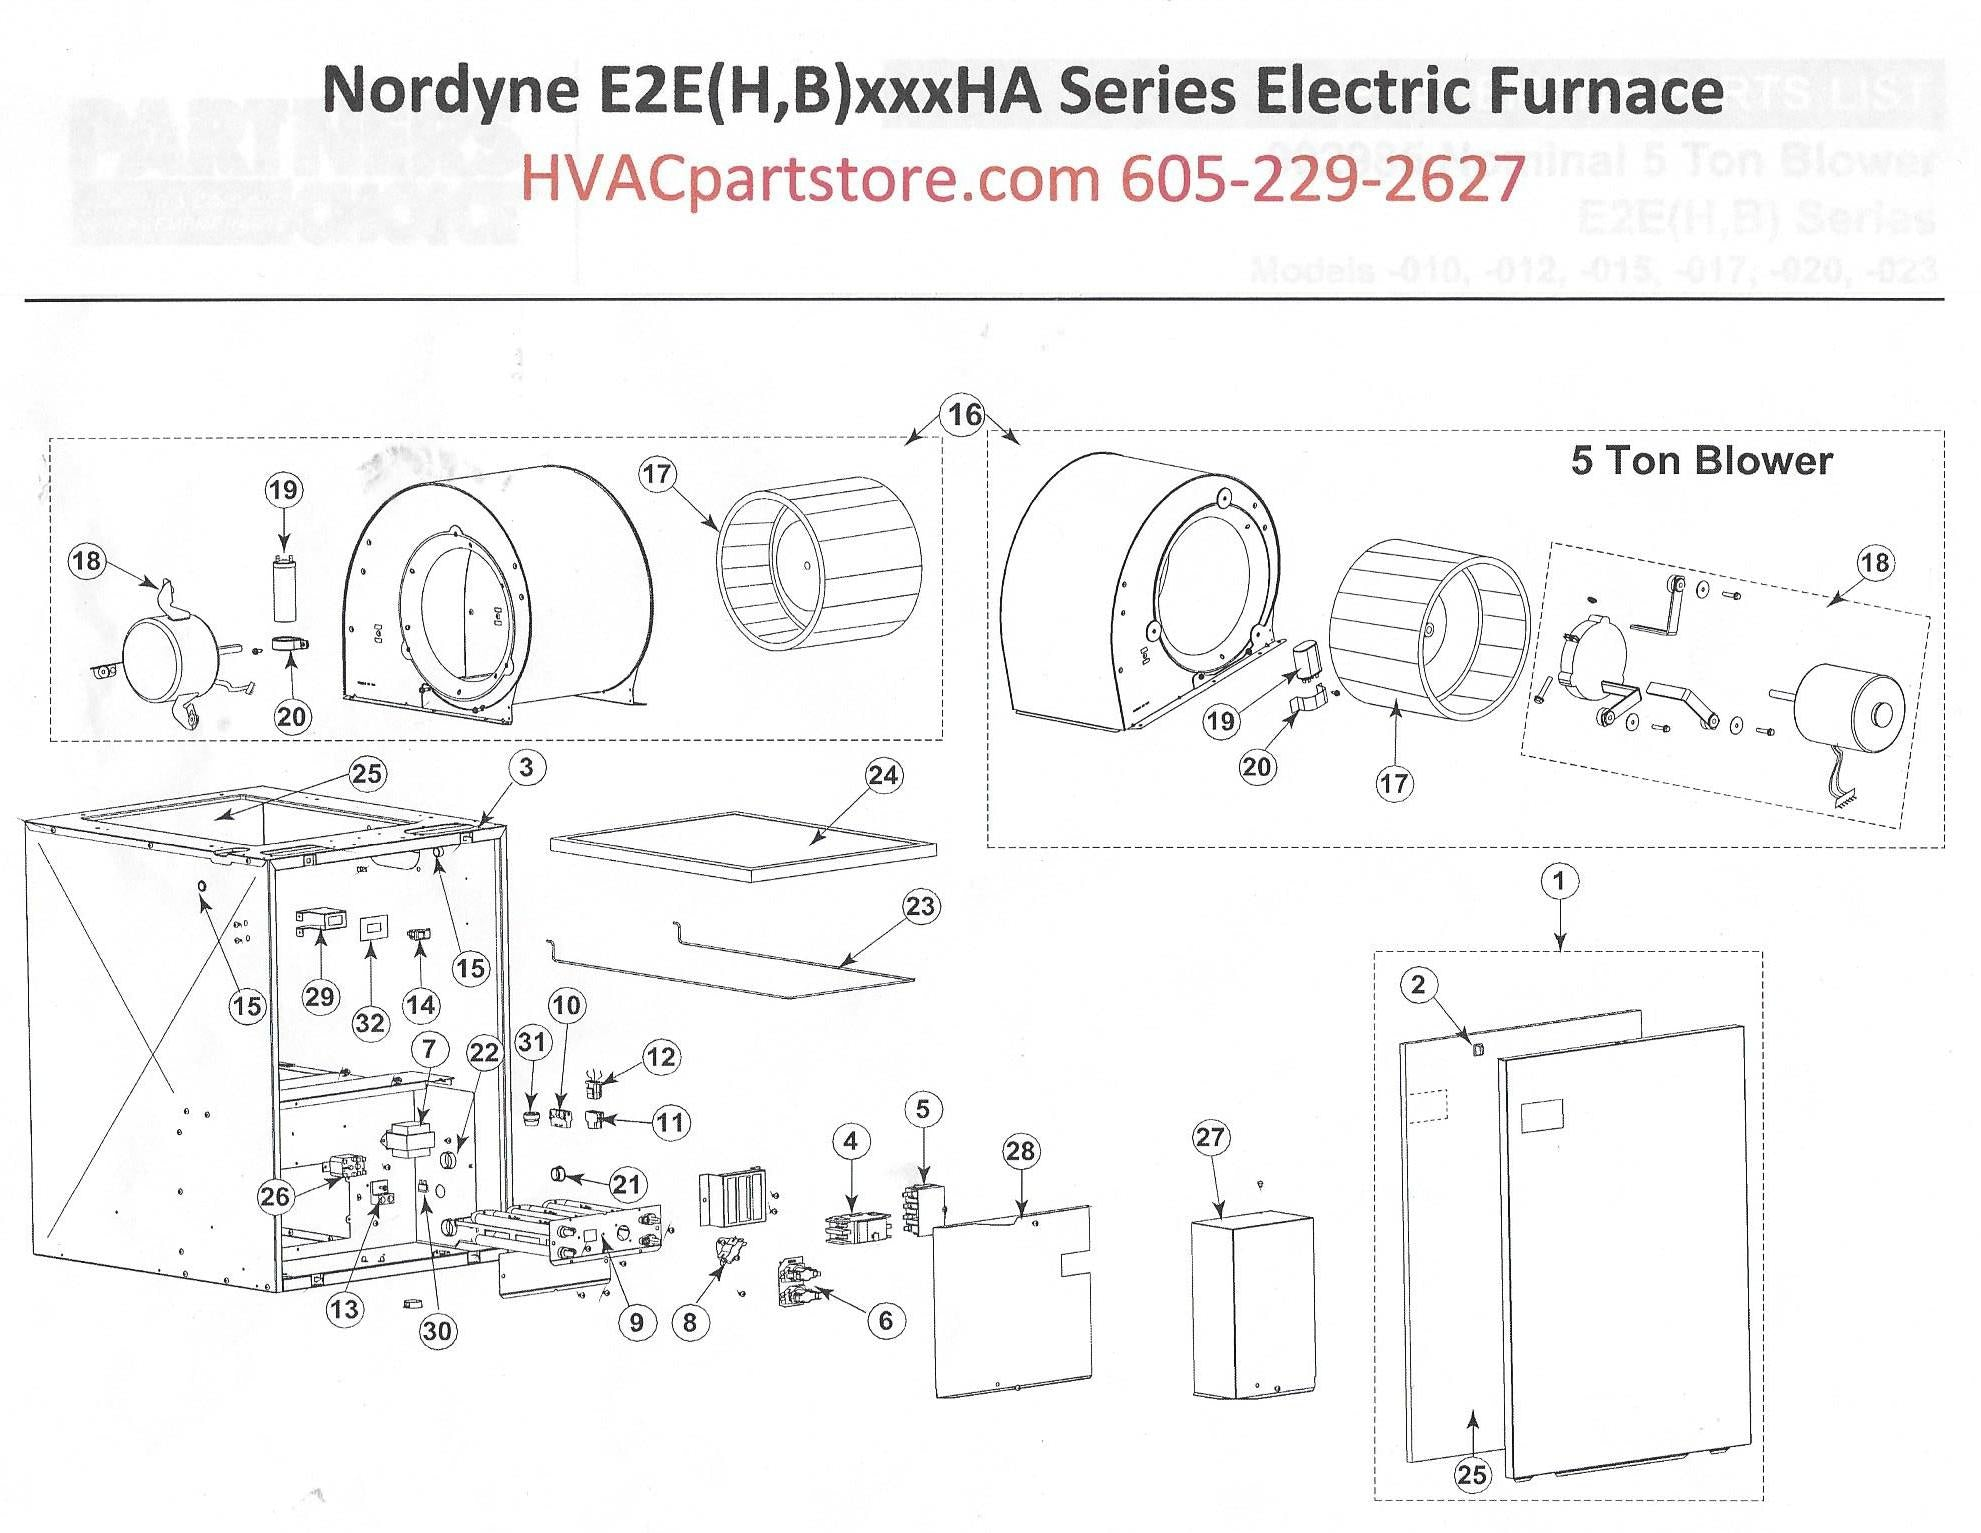 E2HADiagram_49ce4556 d54a 492f b872 5576d01fd58c?12850817849207588219 e2eb015ha nordyne electric furnace parts hvacpartstore Intertherm E2EB 015Ha Manual at gsmx.co